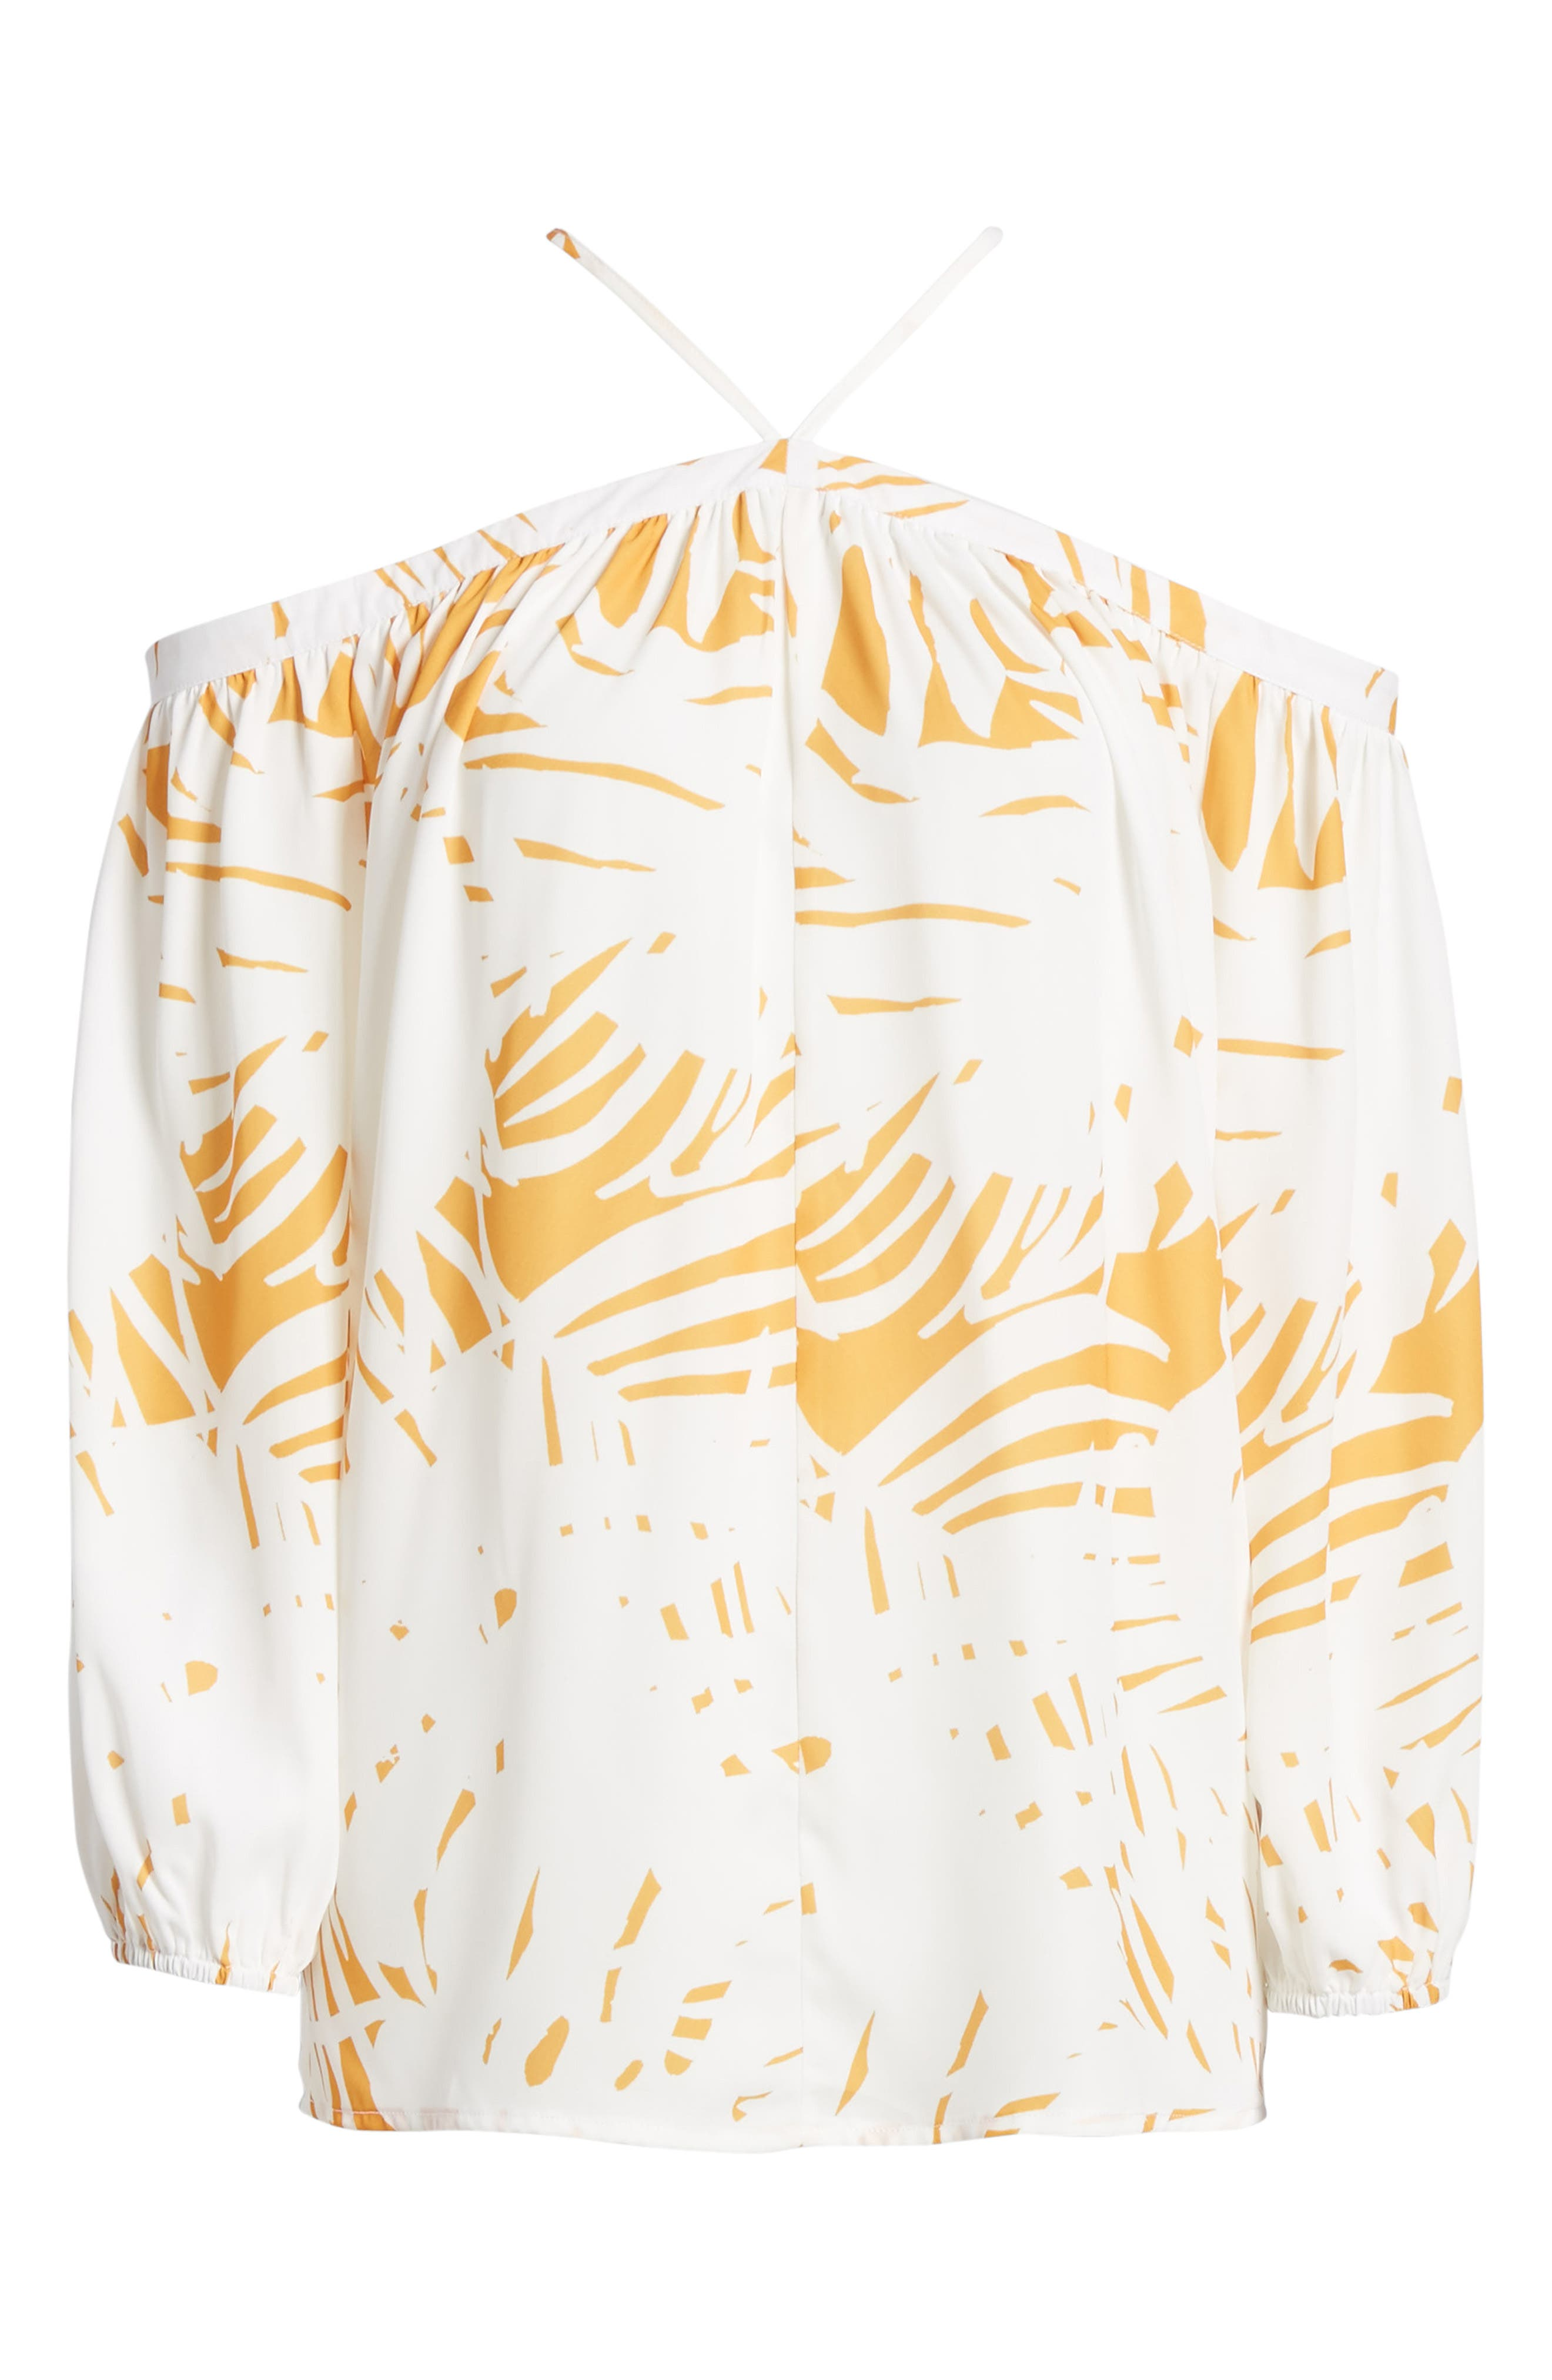 Bishop + Young Ana Palm Print Off the Shoulder Top,                             Alternate thumbnail 7, color,                             400